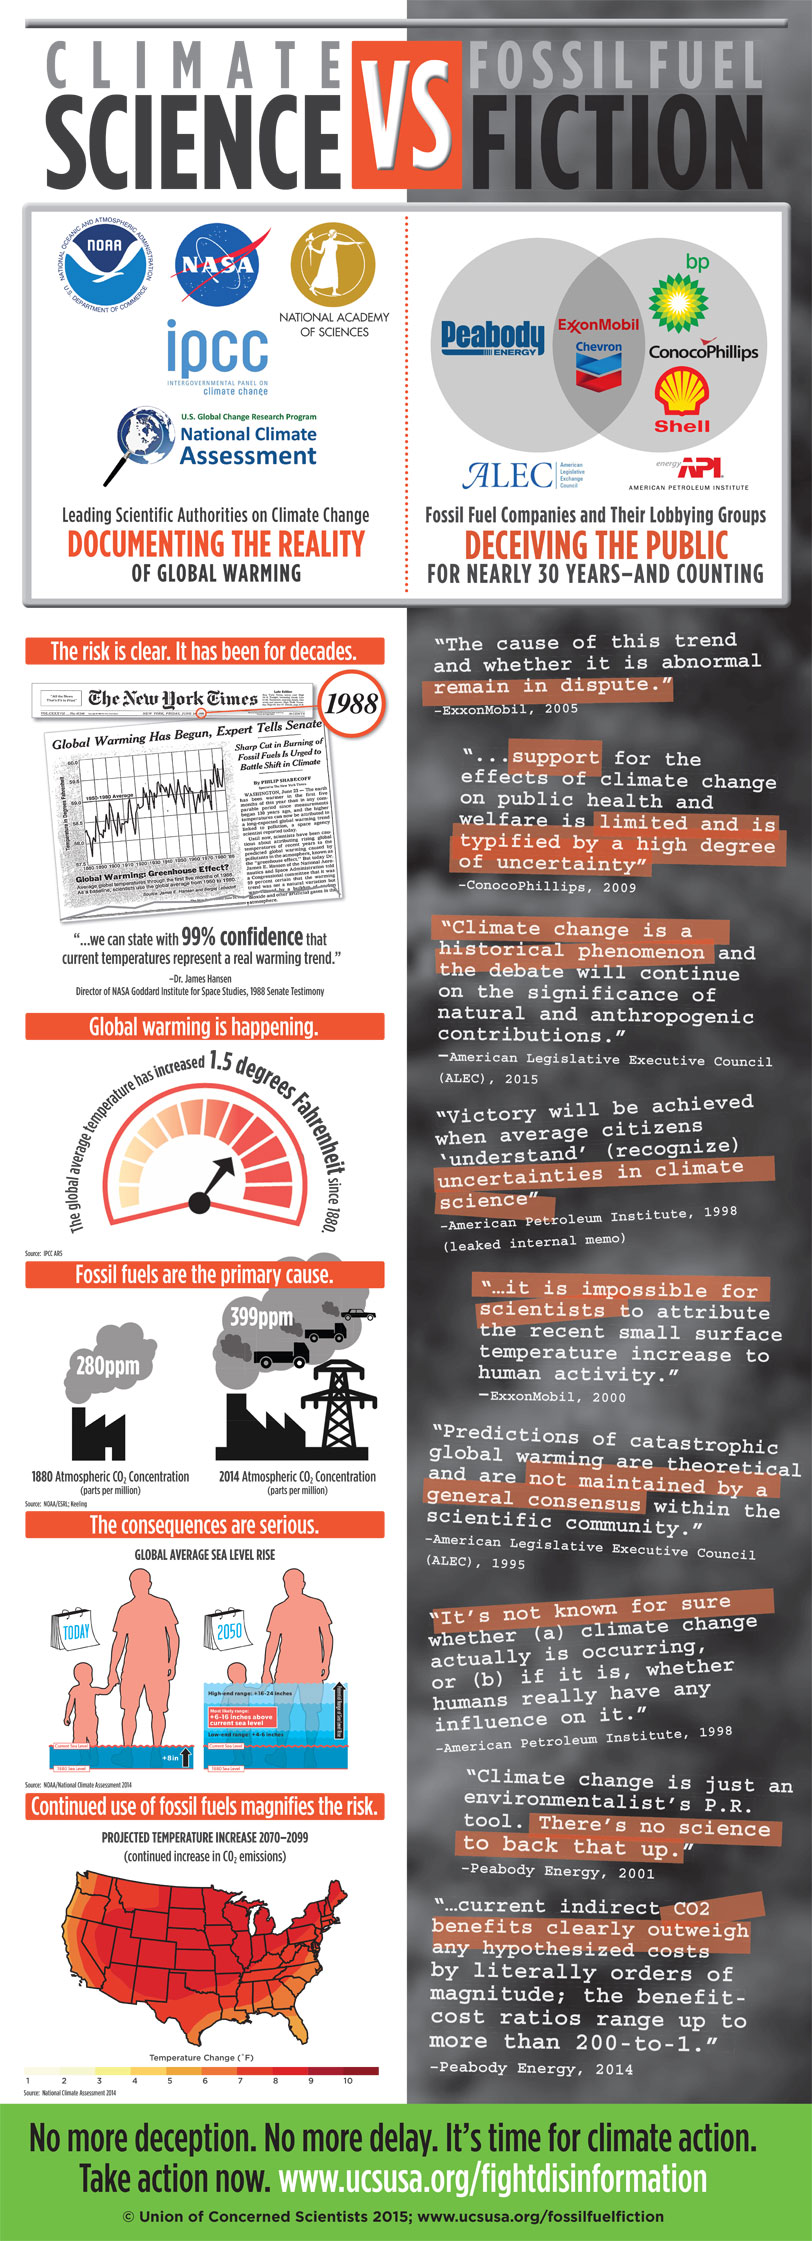 Climate Science Vs Fossil Fuel Fiction An Infographic On